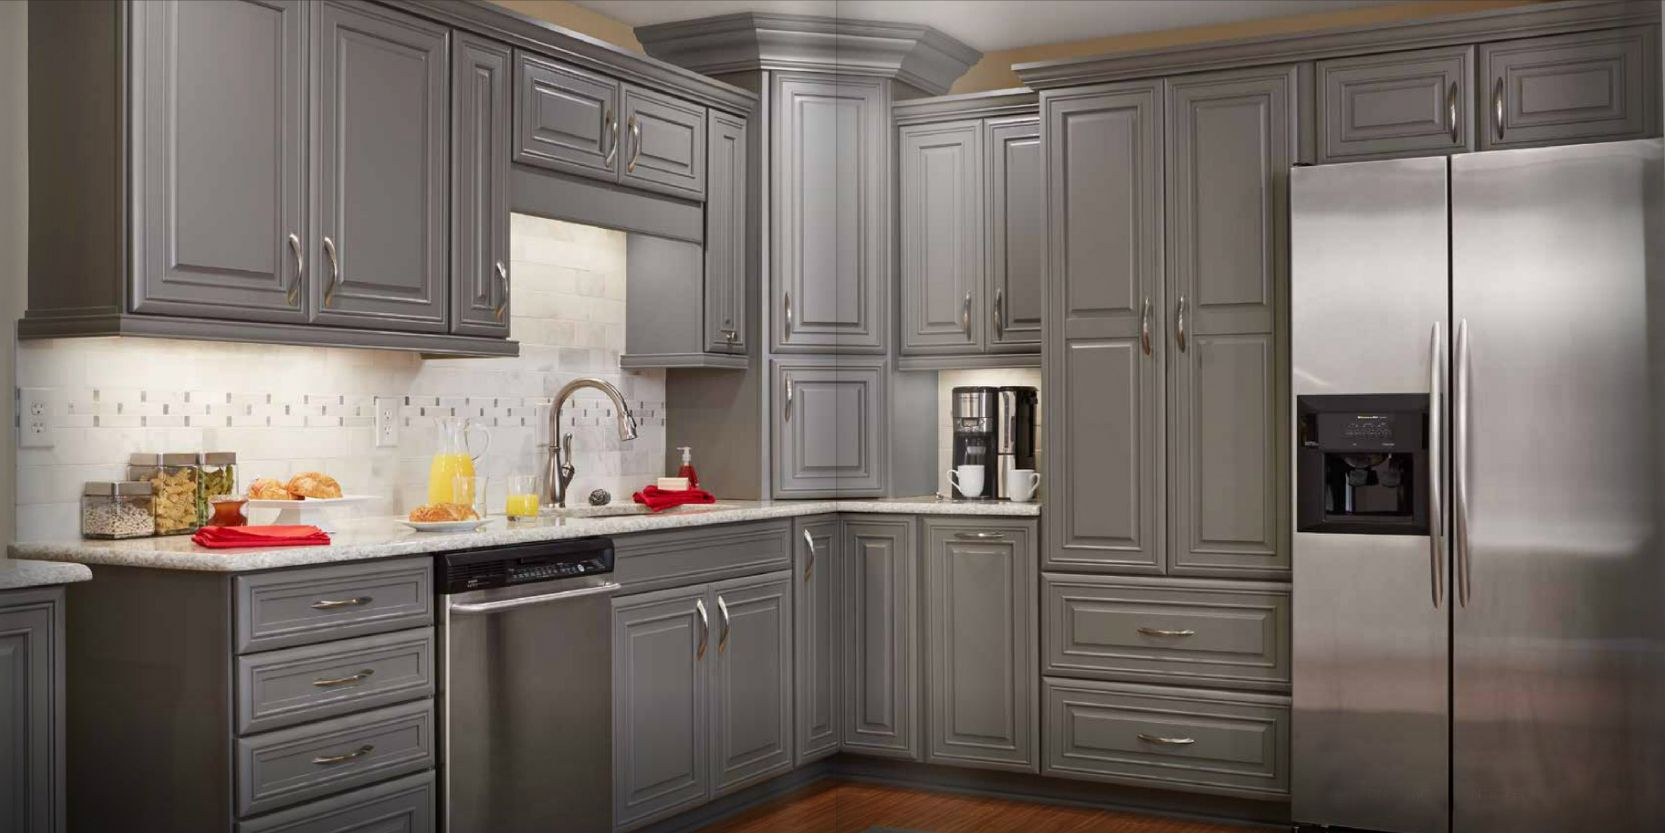 Best Grey Stained Kitchen Cabinets Google Search Logan Blvd 640 x 480